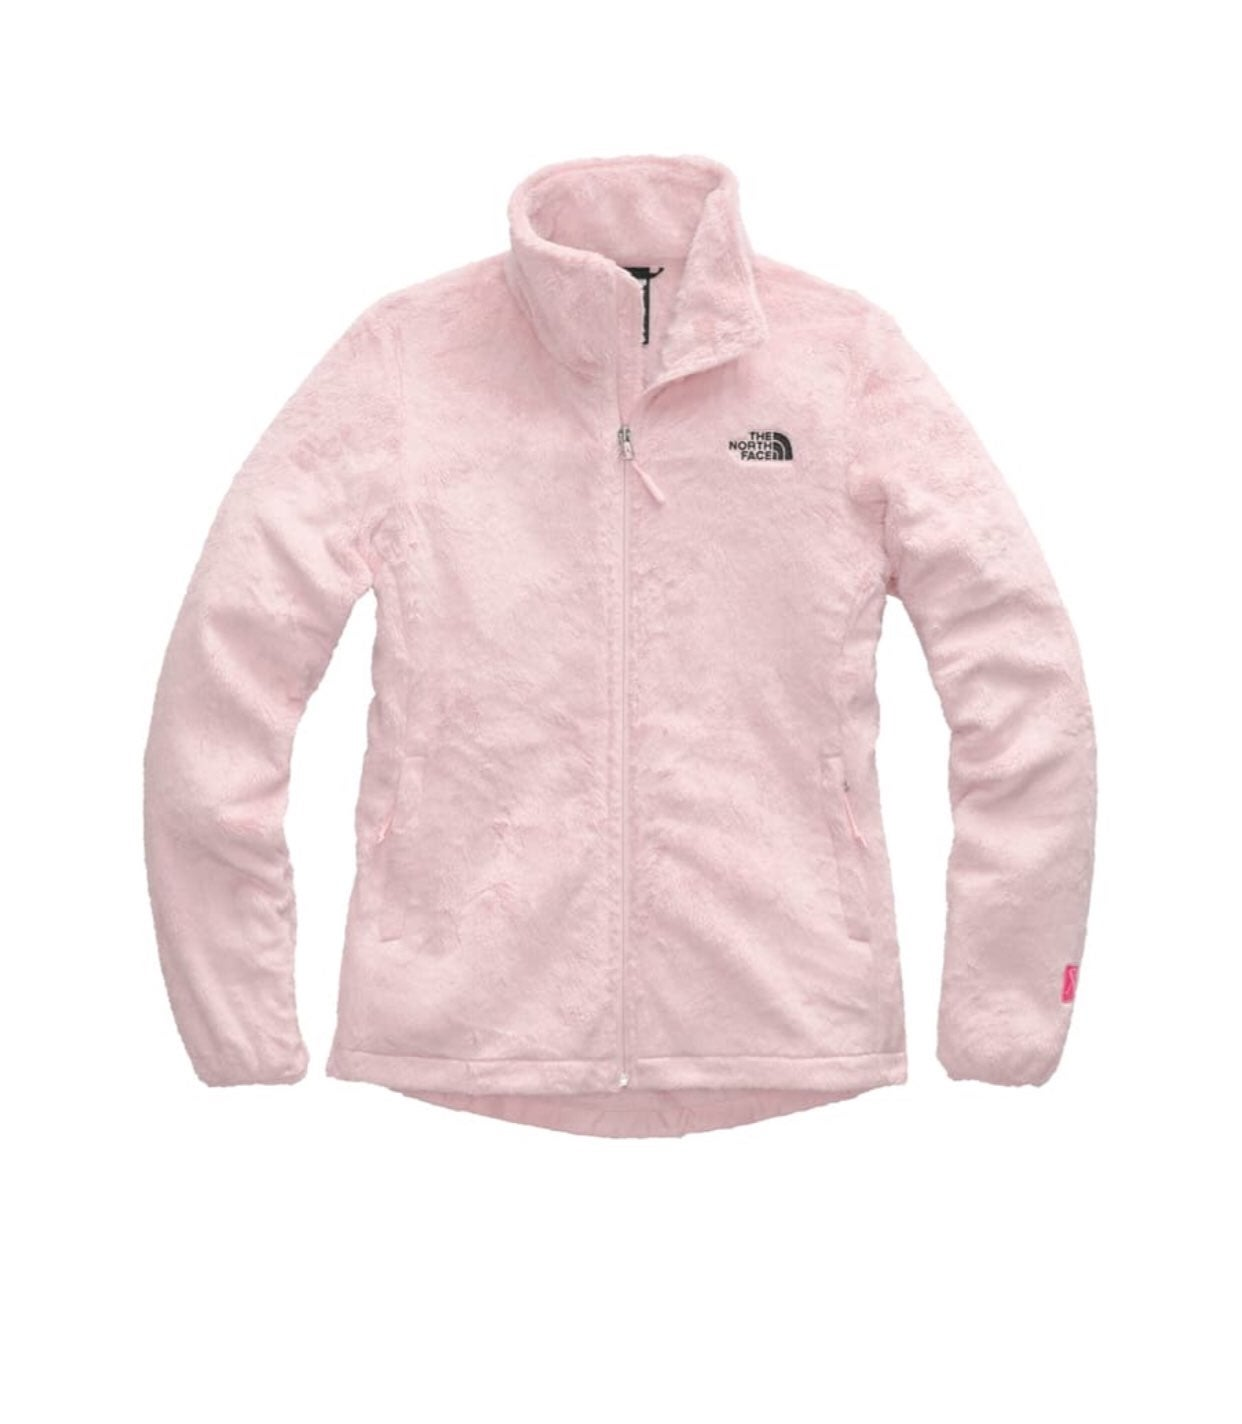 North Face Pink Breast Cancer jacket